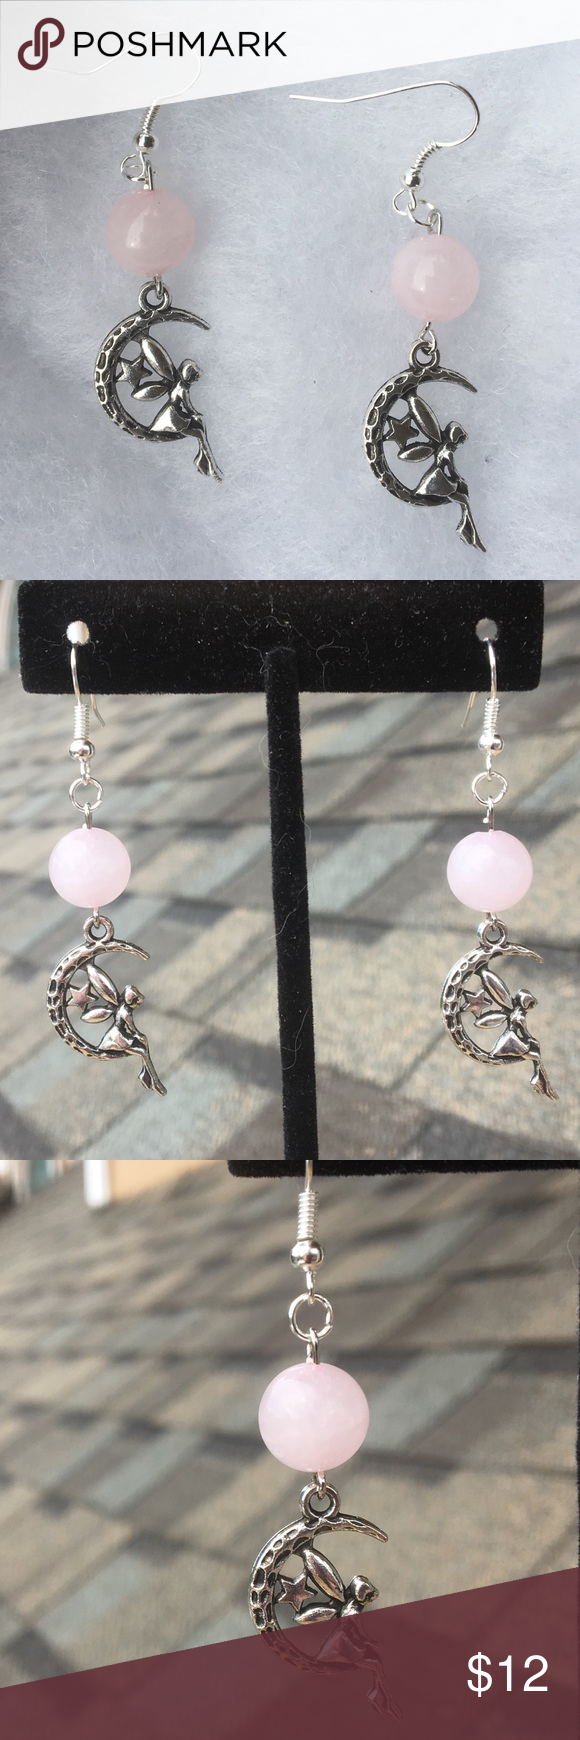 ee251b9c8 Pink Rose Quartz Fairy Earrings These beautiful earrings are made with  natural pink rose quartz and